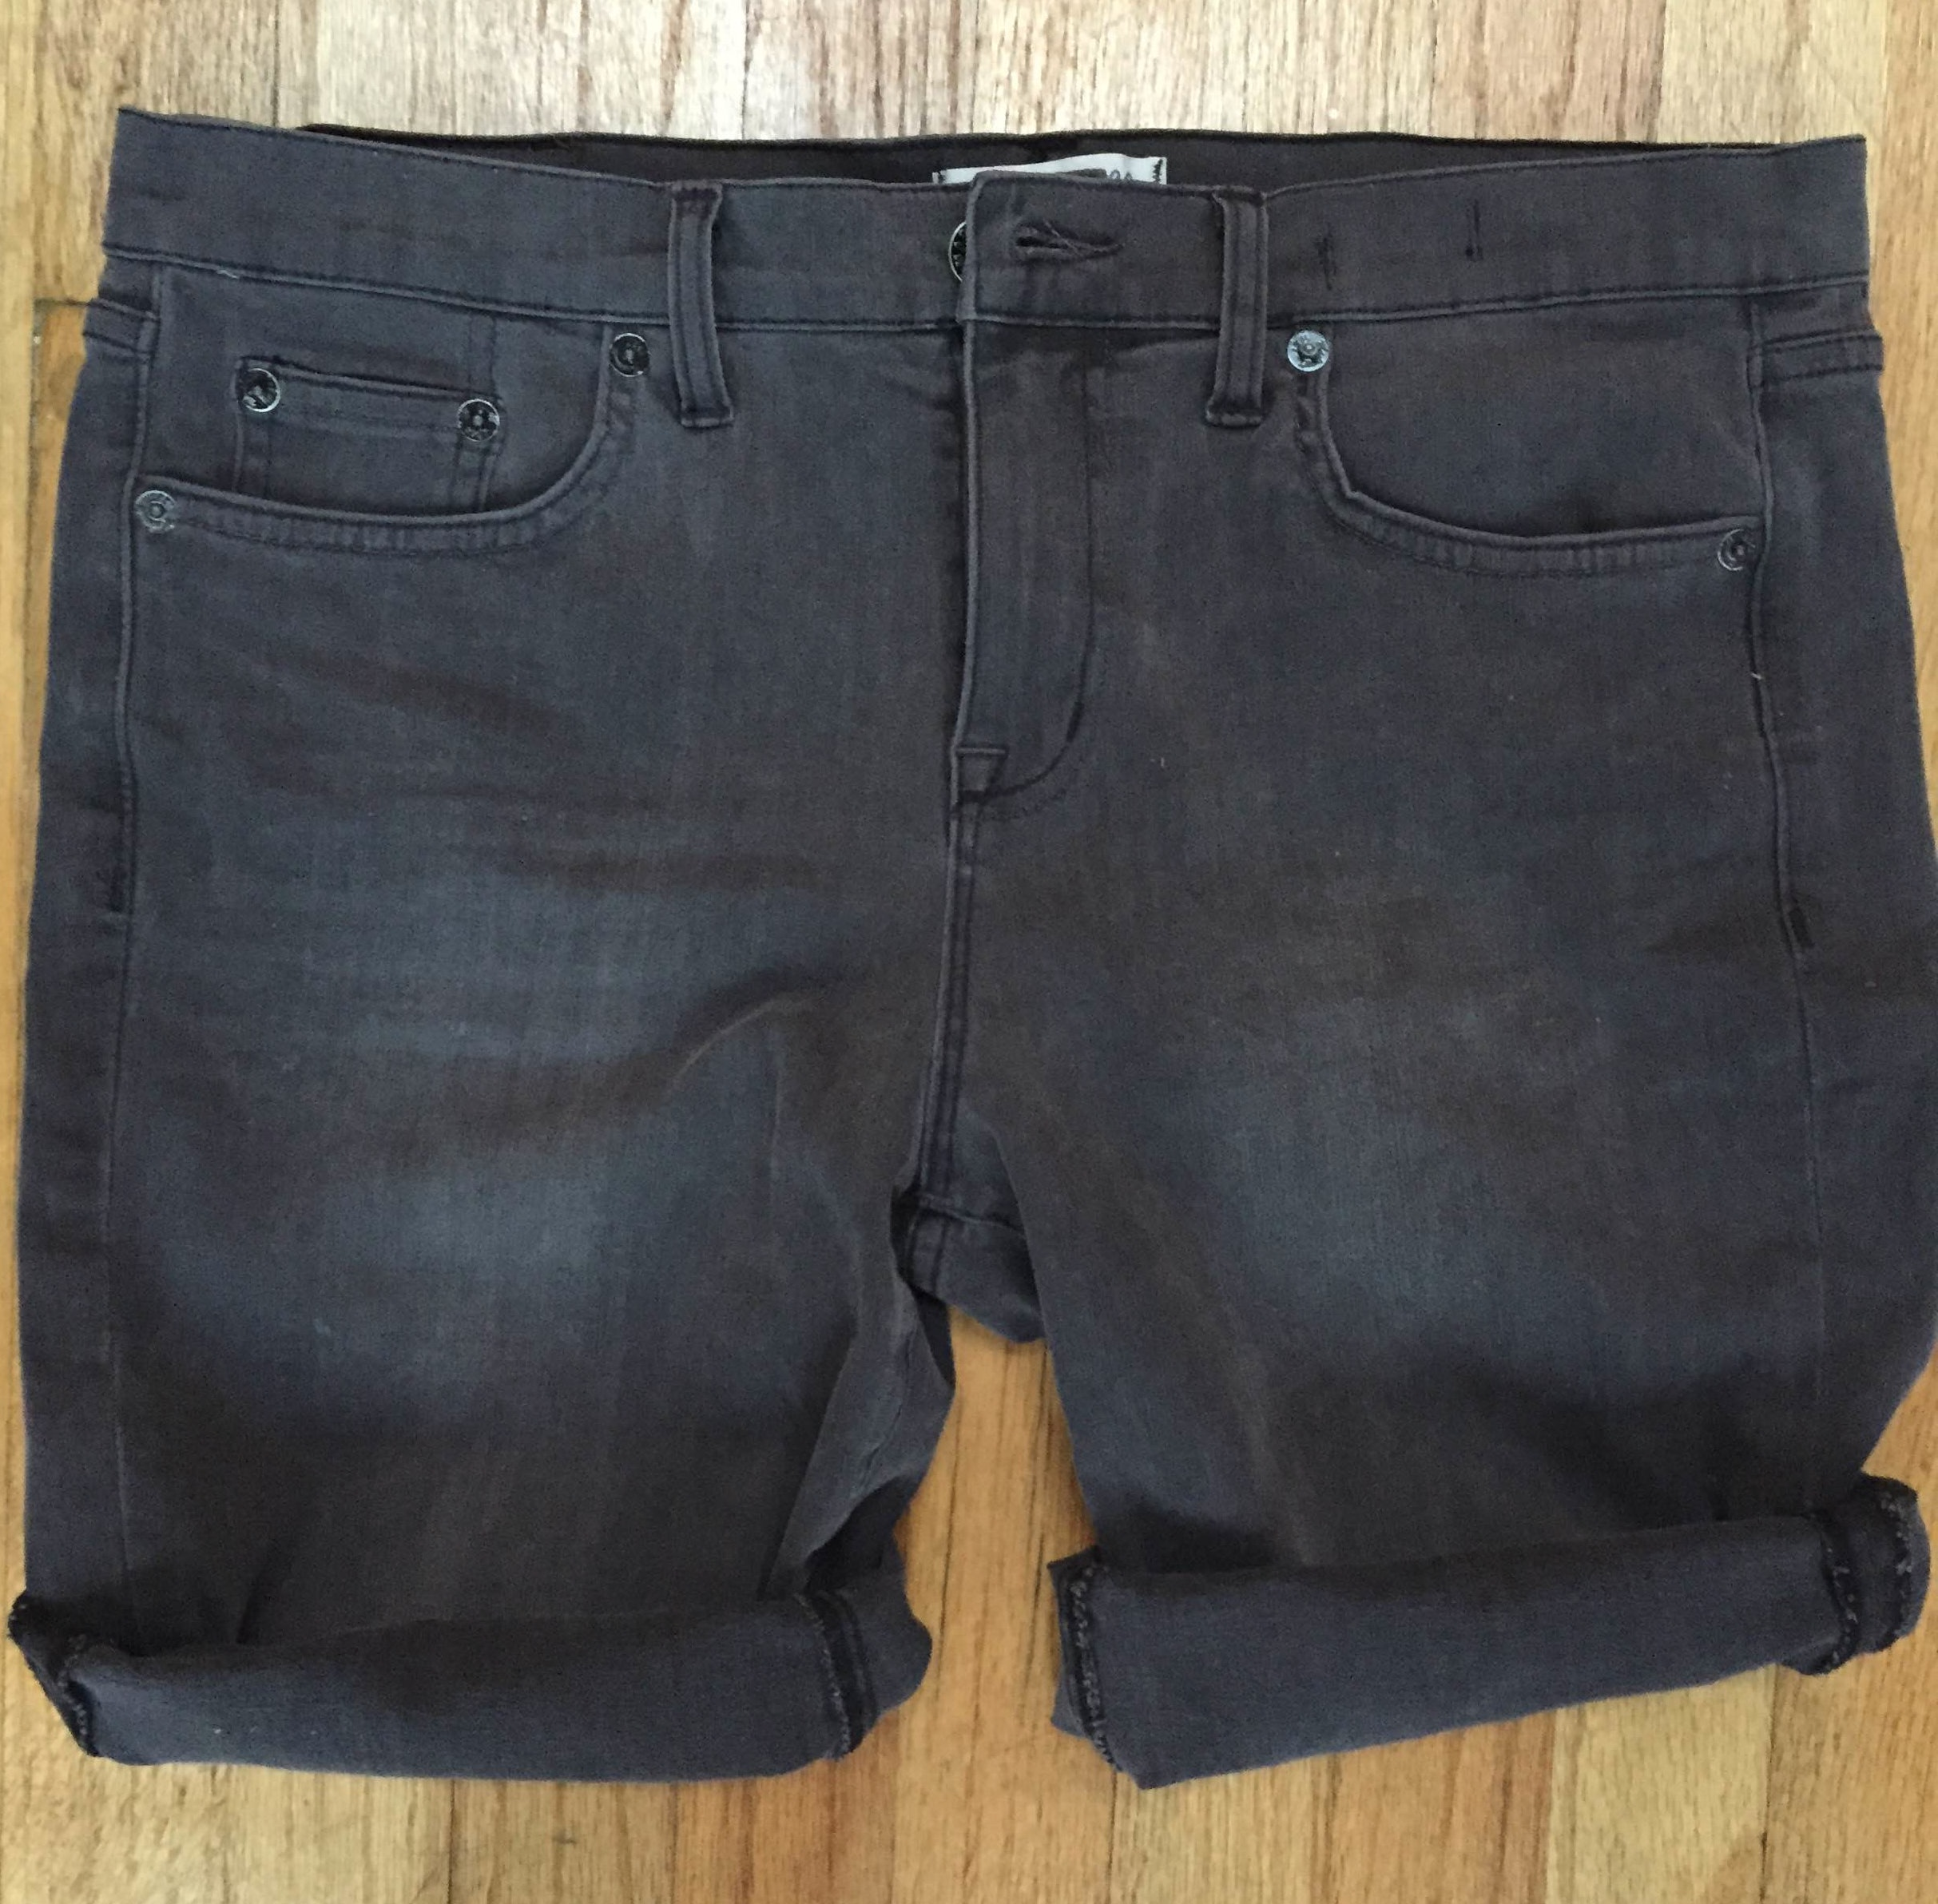 0432bf0dc567 How To Make Jeans Into Shorts In 5 Simple Steps Because Legs Need To  Breathe!